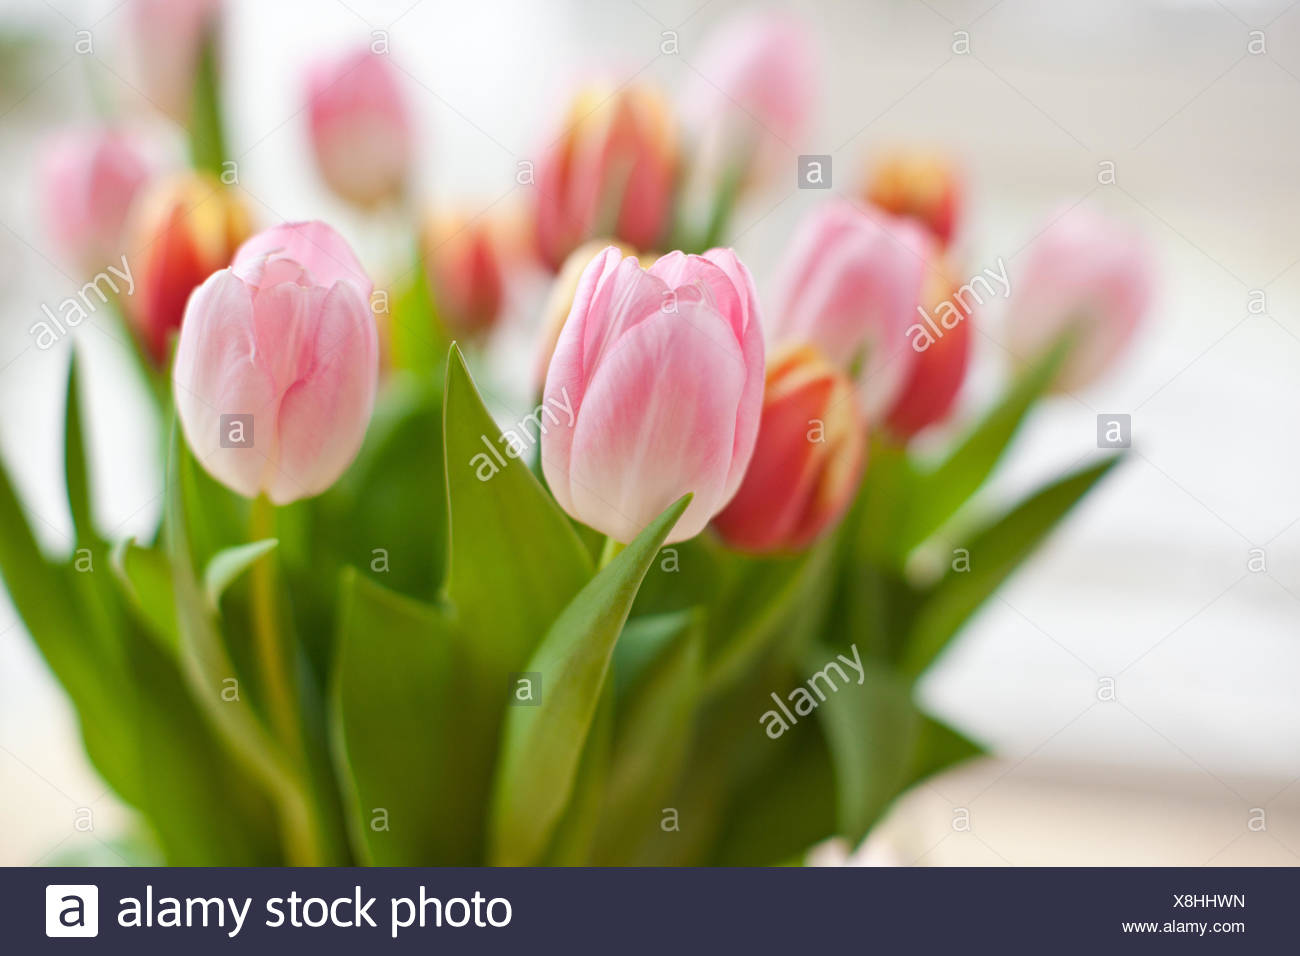 tulpen in vase stock photos tulpen in vase stock images. Black Bedroom Furniture Sets. Home Design Ideas